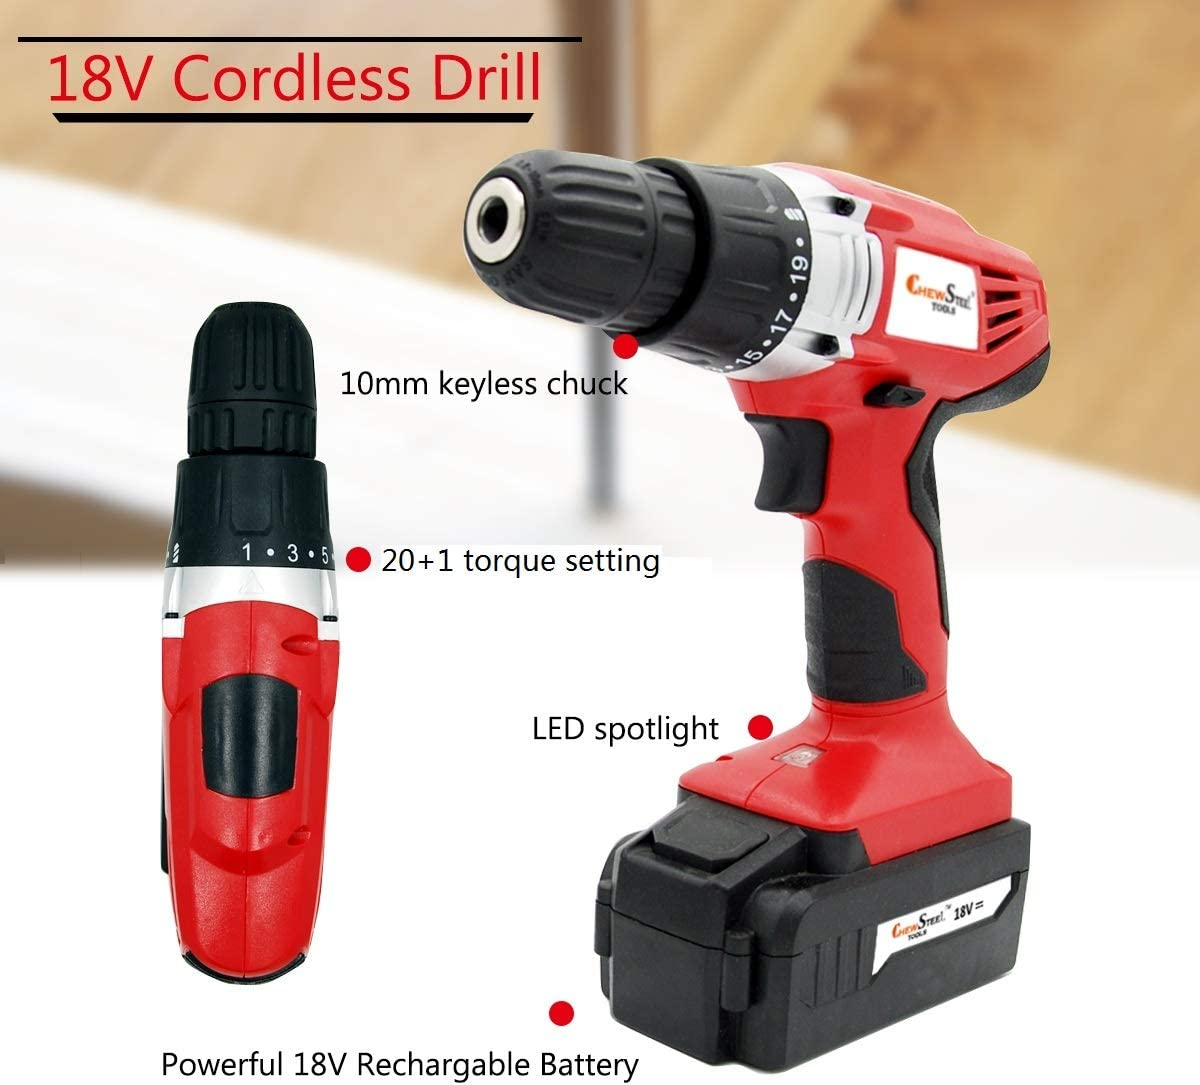 Chew Steel Tools 18 V Cordless Drill, Power Drill Set with 1200 mAh Battery and Charger, Keyless Clutch, Variable Speed, 21 Position and 32pcs Drill Driver Bit